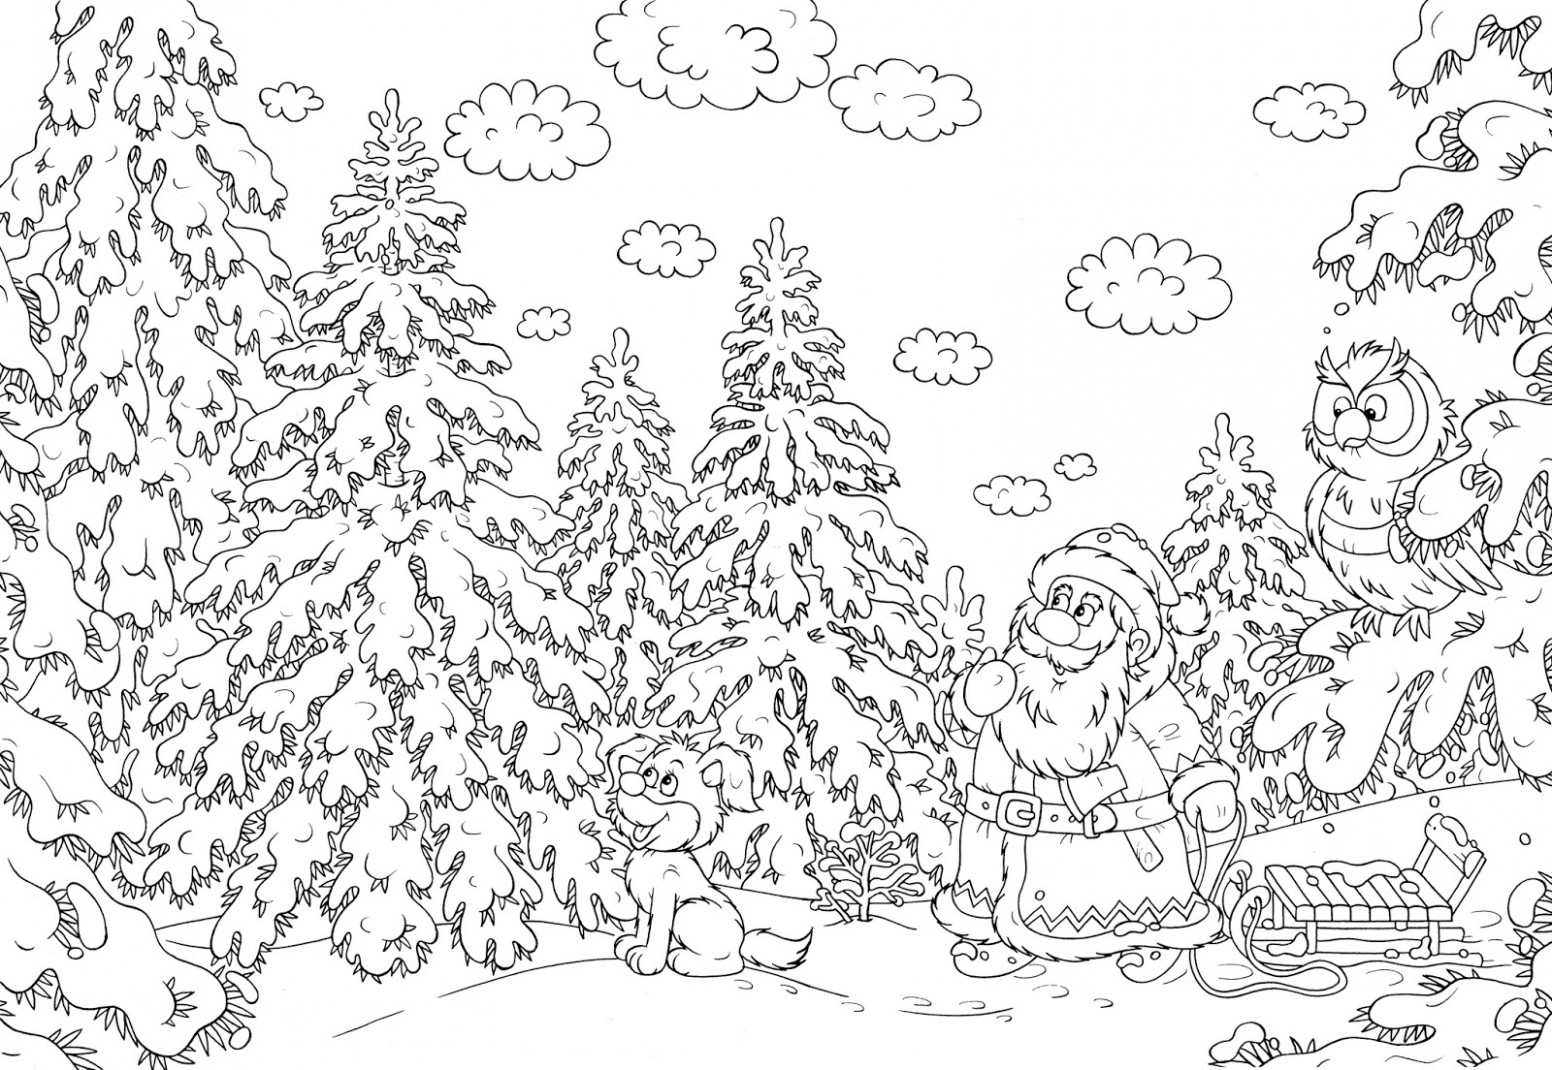 coloring page ~ Freeoloring Pages For Adults Printable Hard Toolor ...